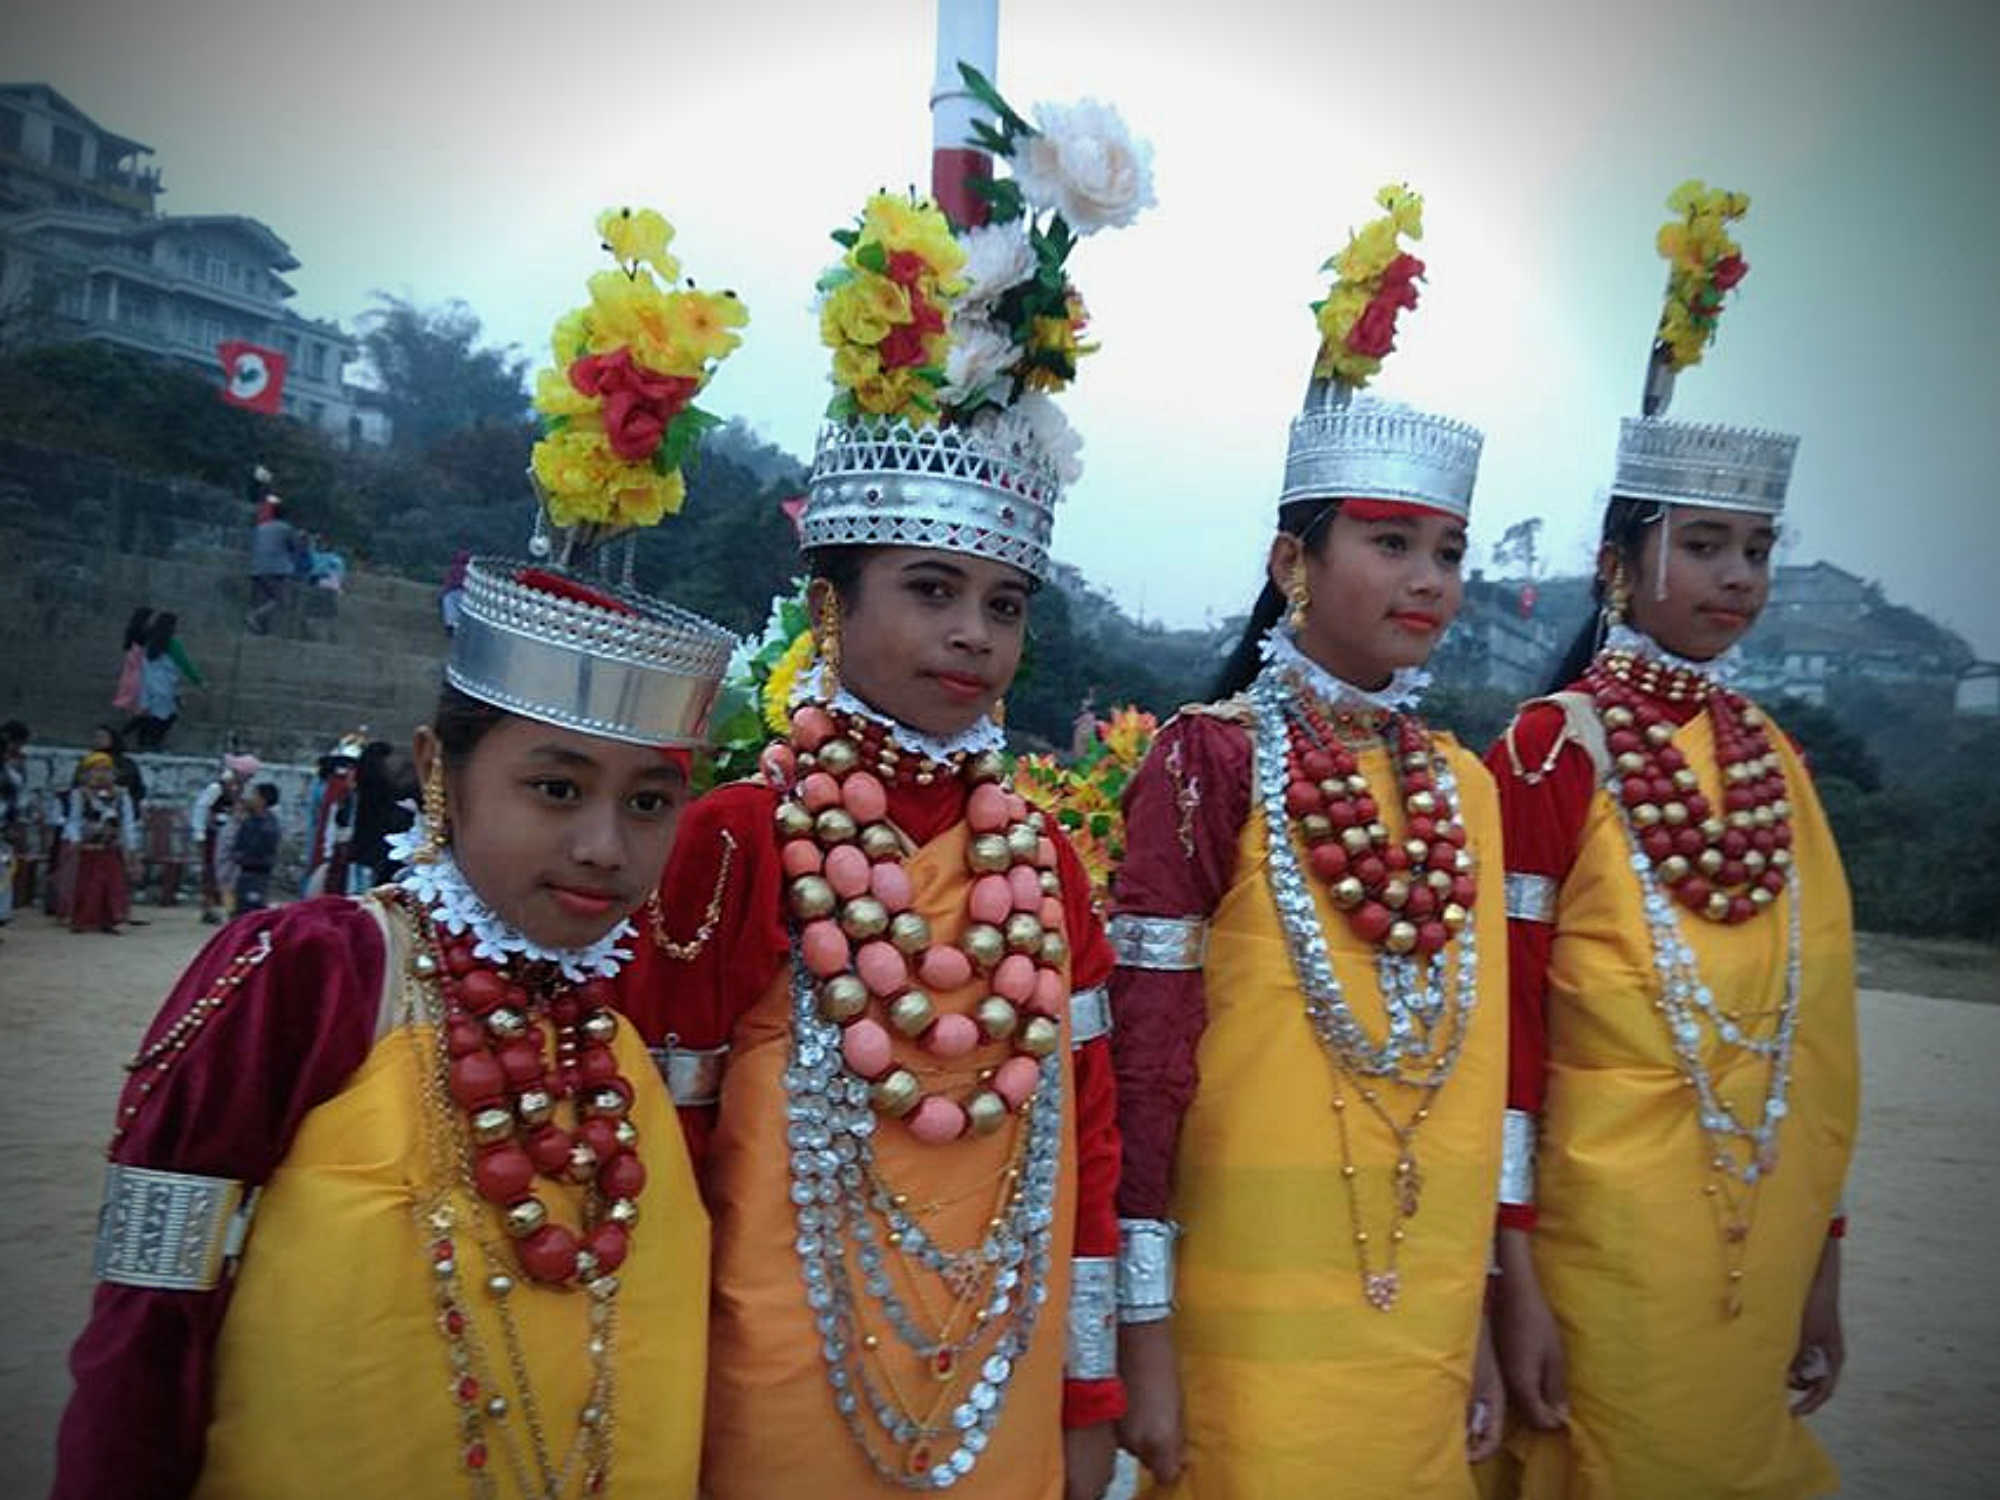 What is the Maidens Festival of Meghalaya, northeast India?